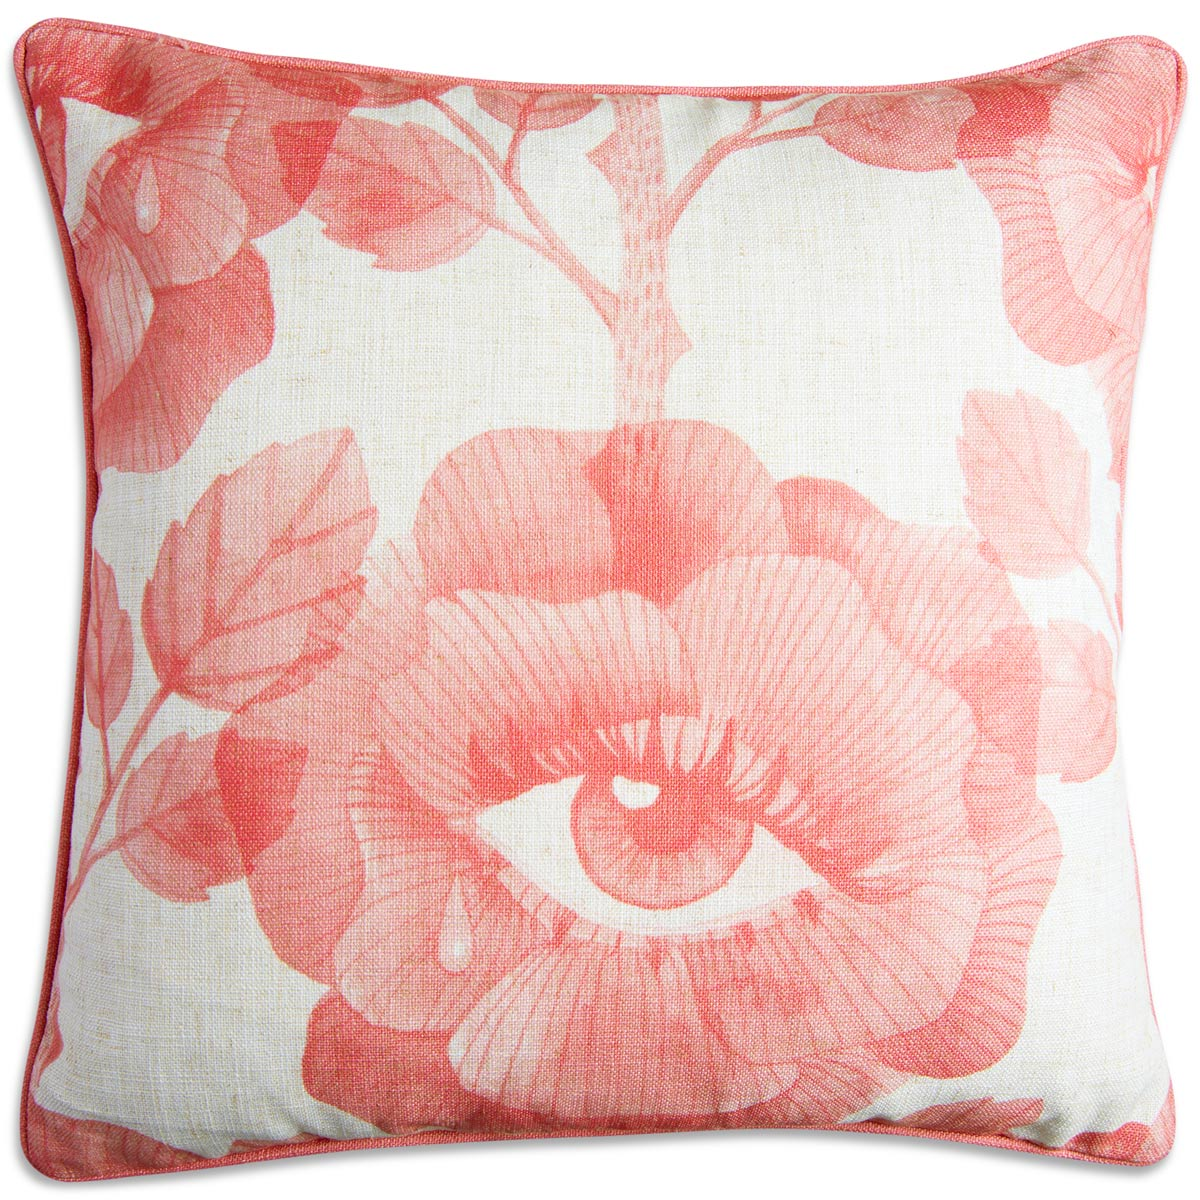 Floral Eyes Pillow in Blush - ModShop1.com